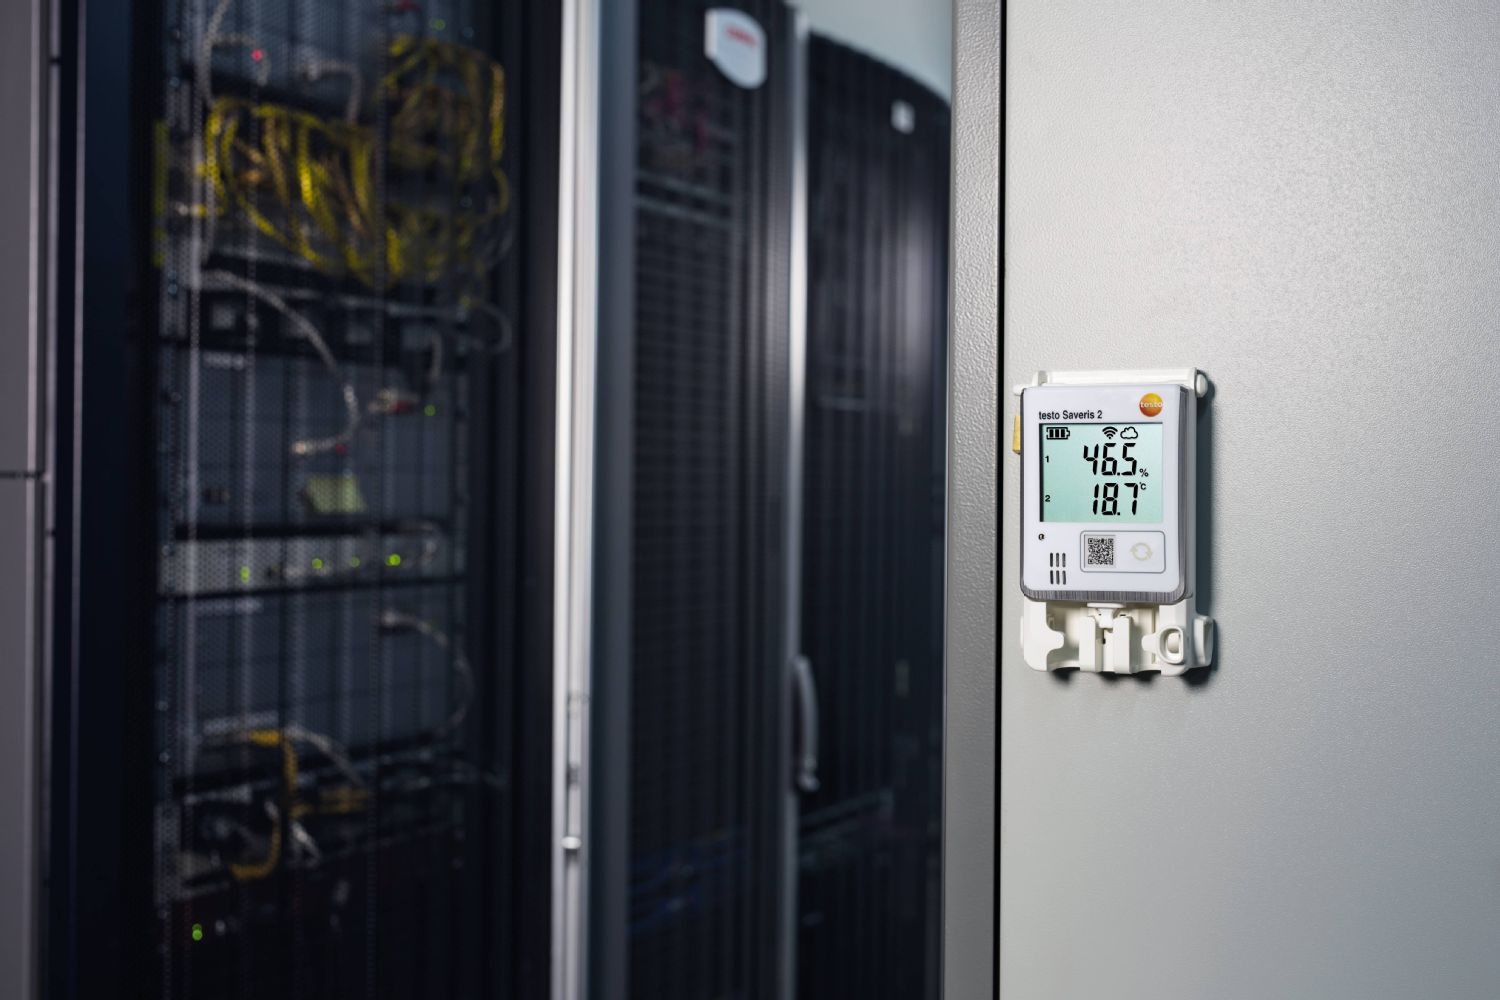 Monitoring the temperature and humidity in server rooms